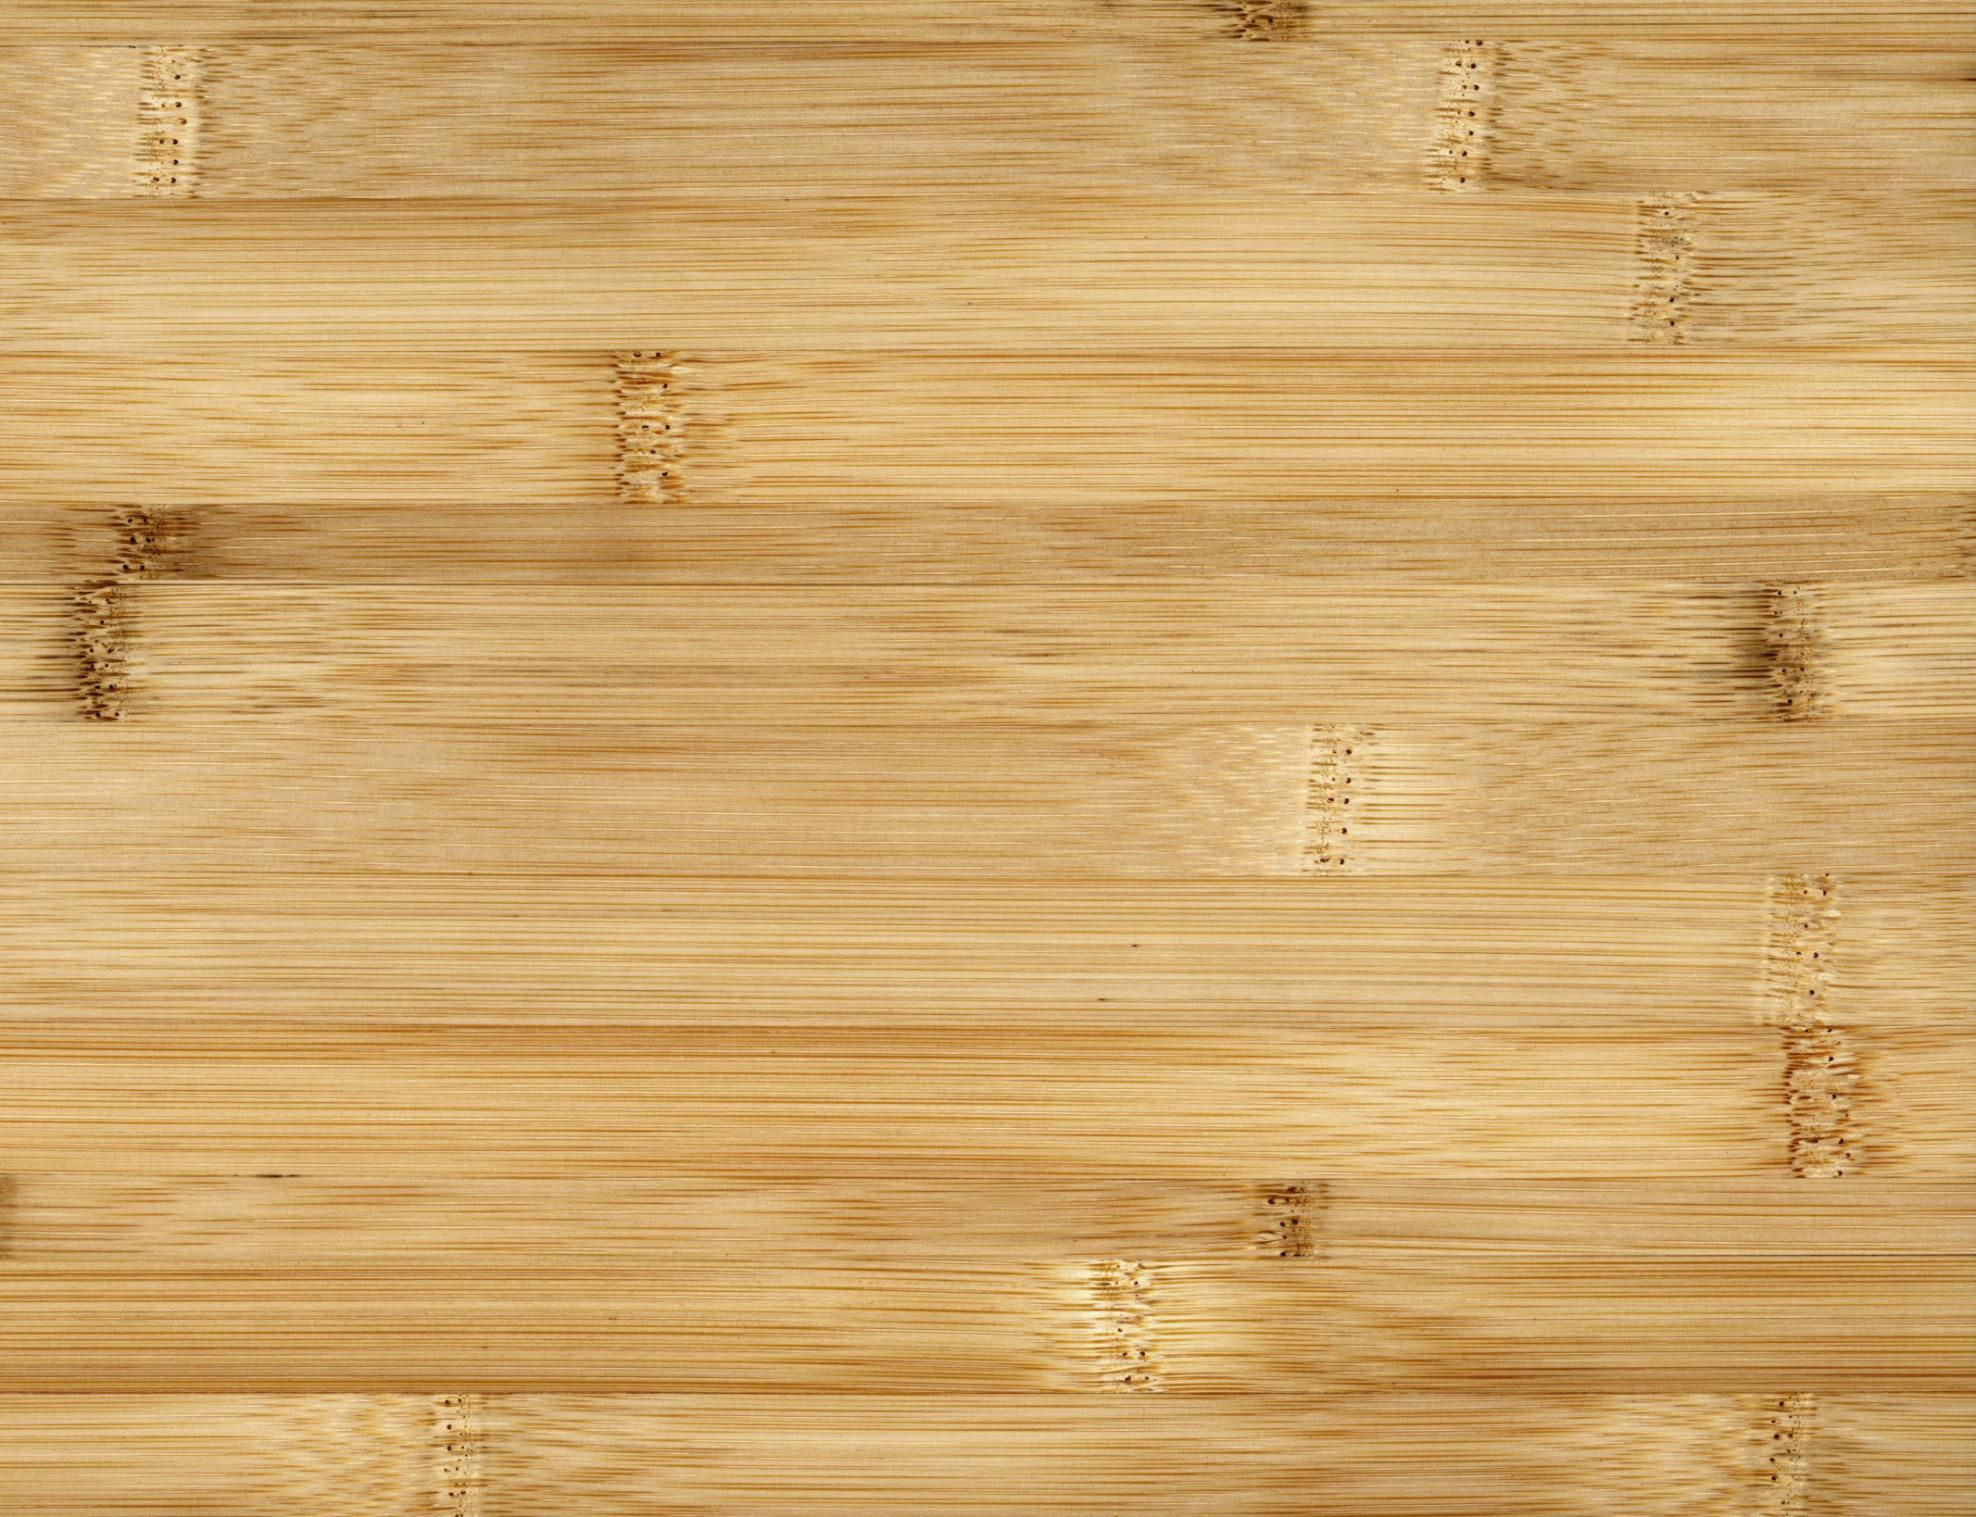 timberland hardwood floors omaha of how to clean bamboo flooring with 200266305 001 56a2fd815f9b58b7d0d000cd